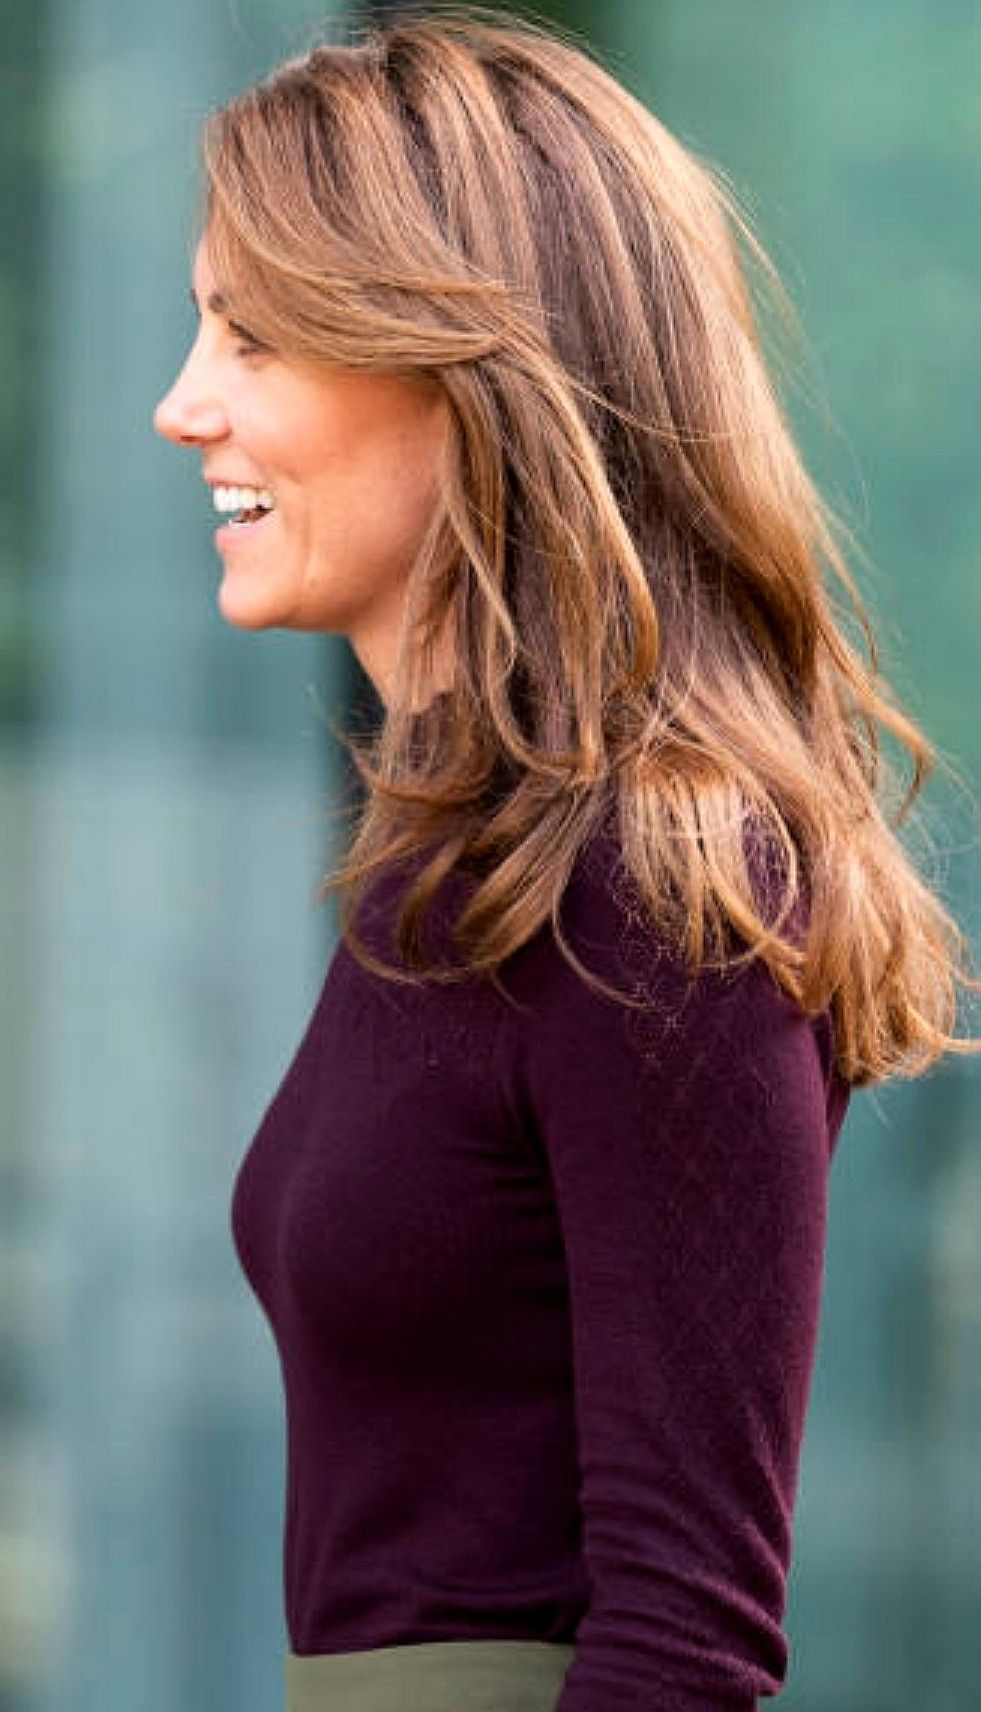 Catherine 9 October 2019 Kate Middleton Hair Kate Middleton Outfits Celebrity Hairstyles